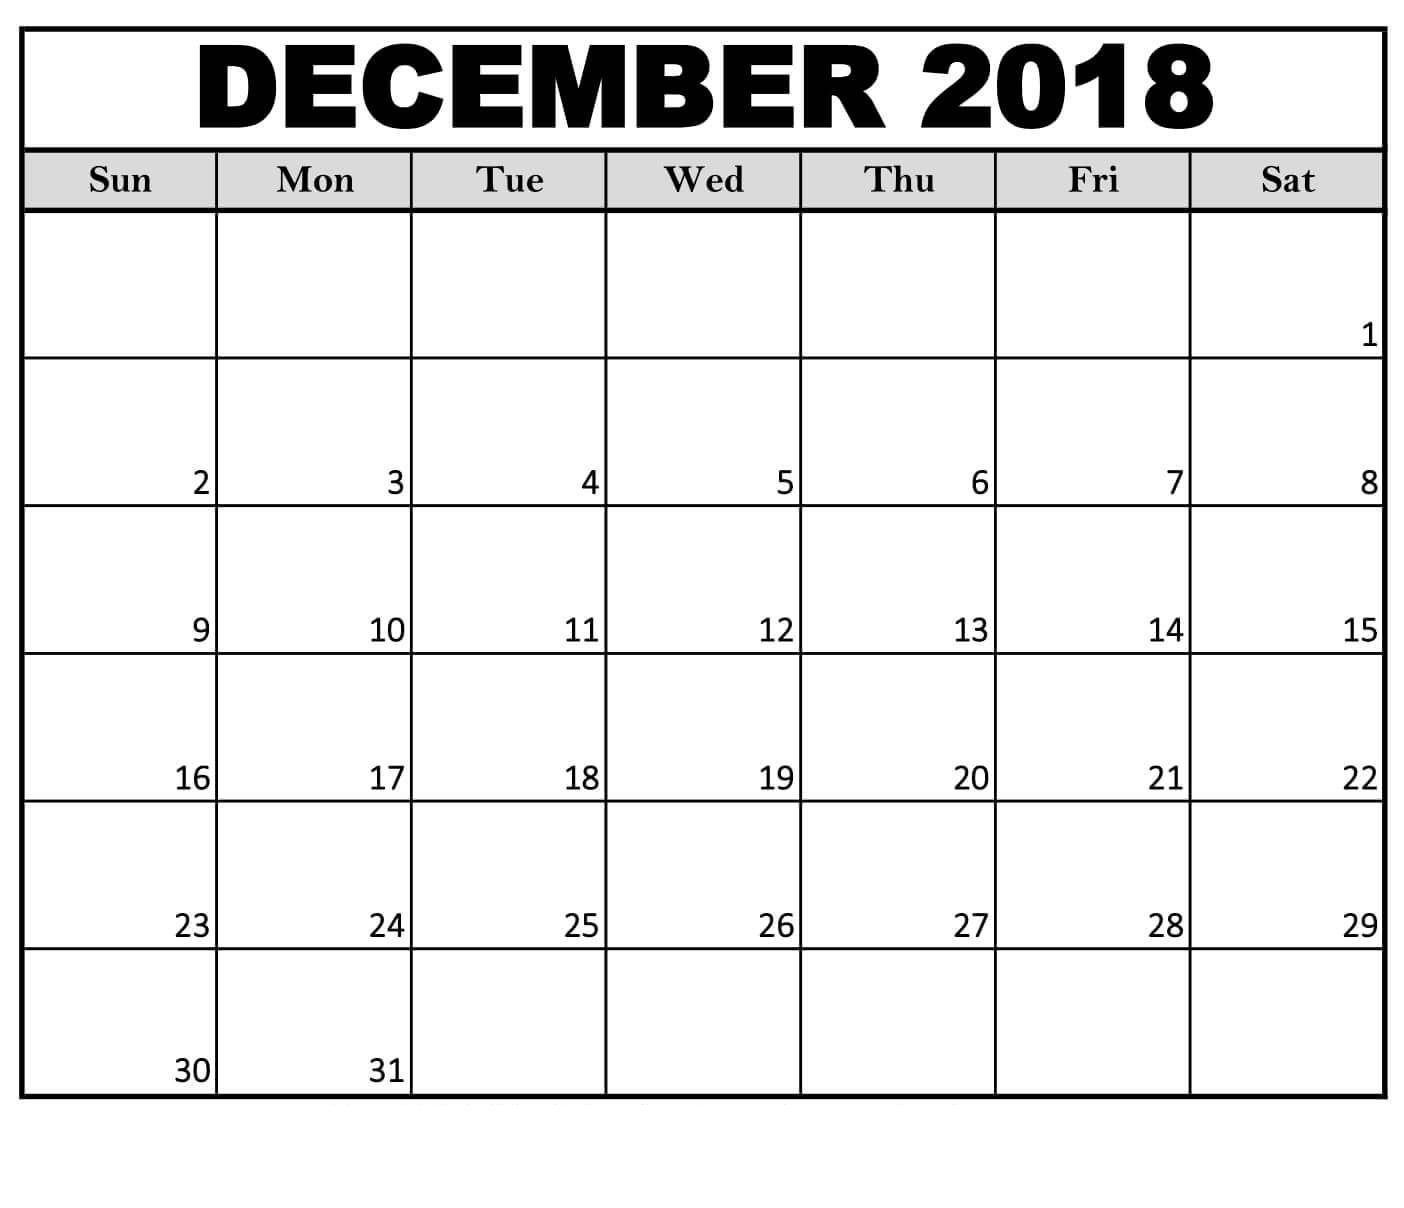 December 2018 #calendar Weekly #template | Printable Calendar with regard to Blank December Weekly Calander